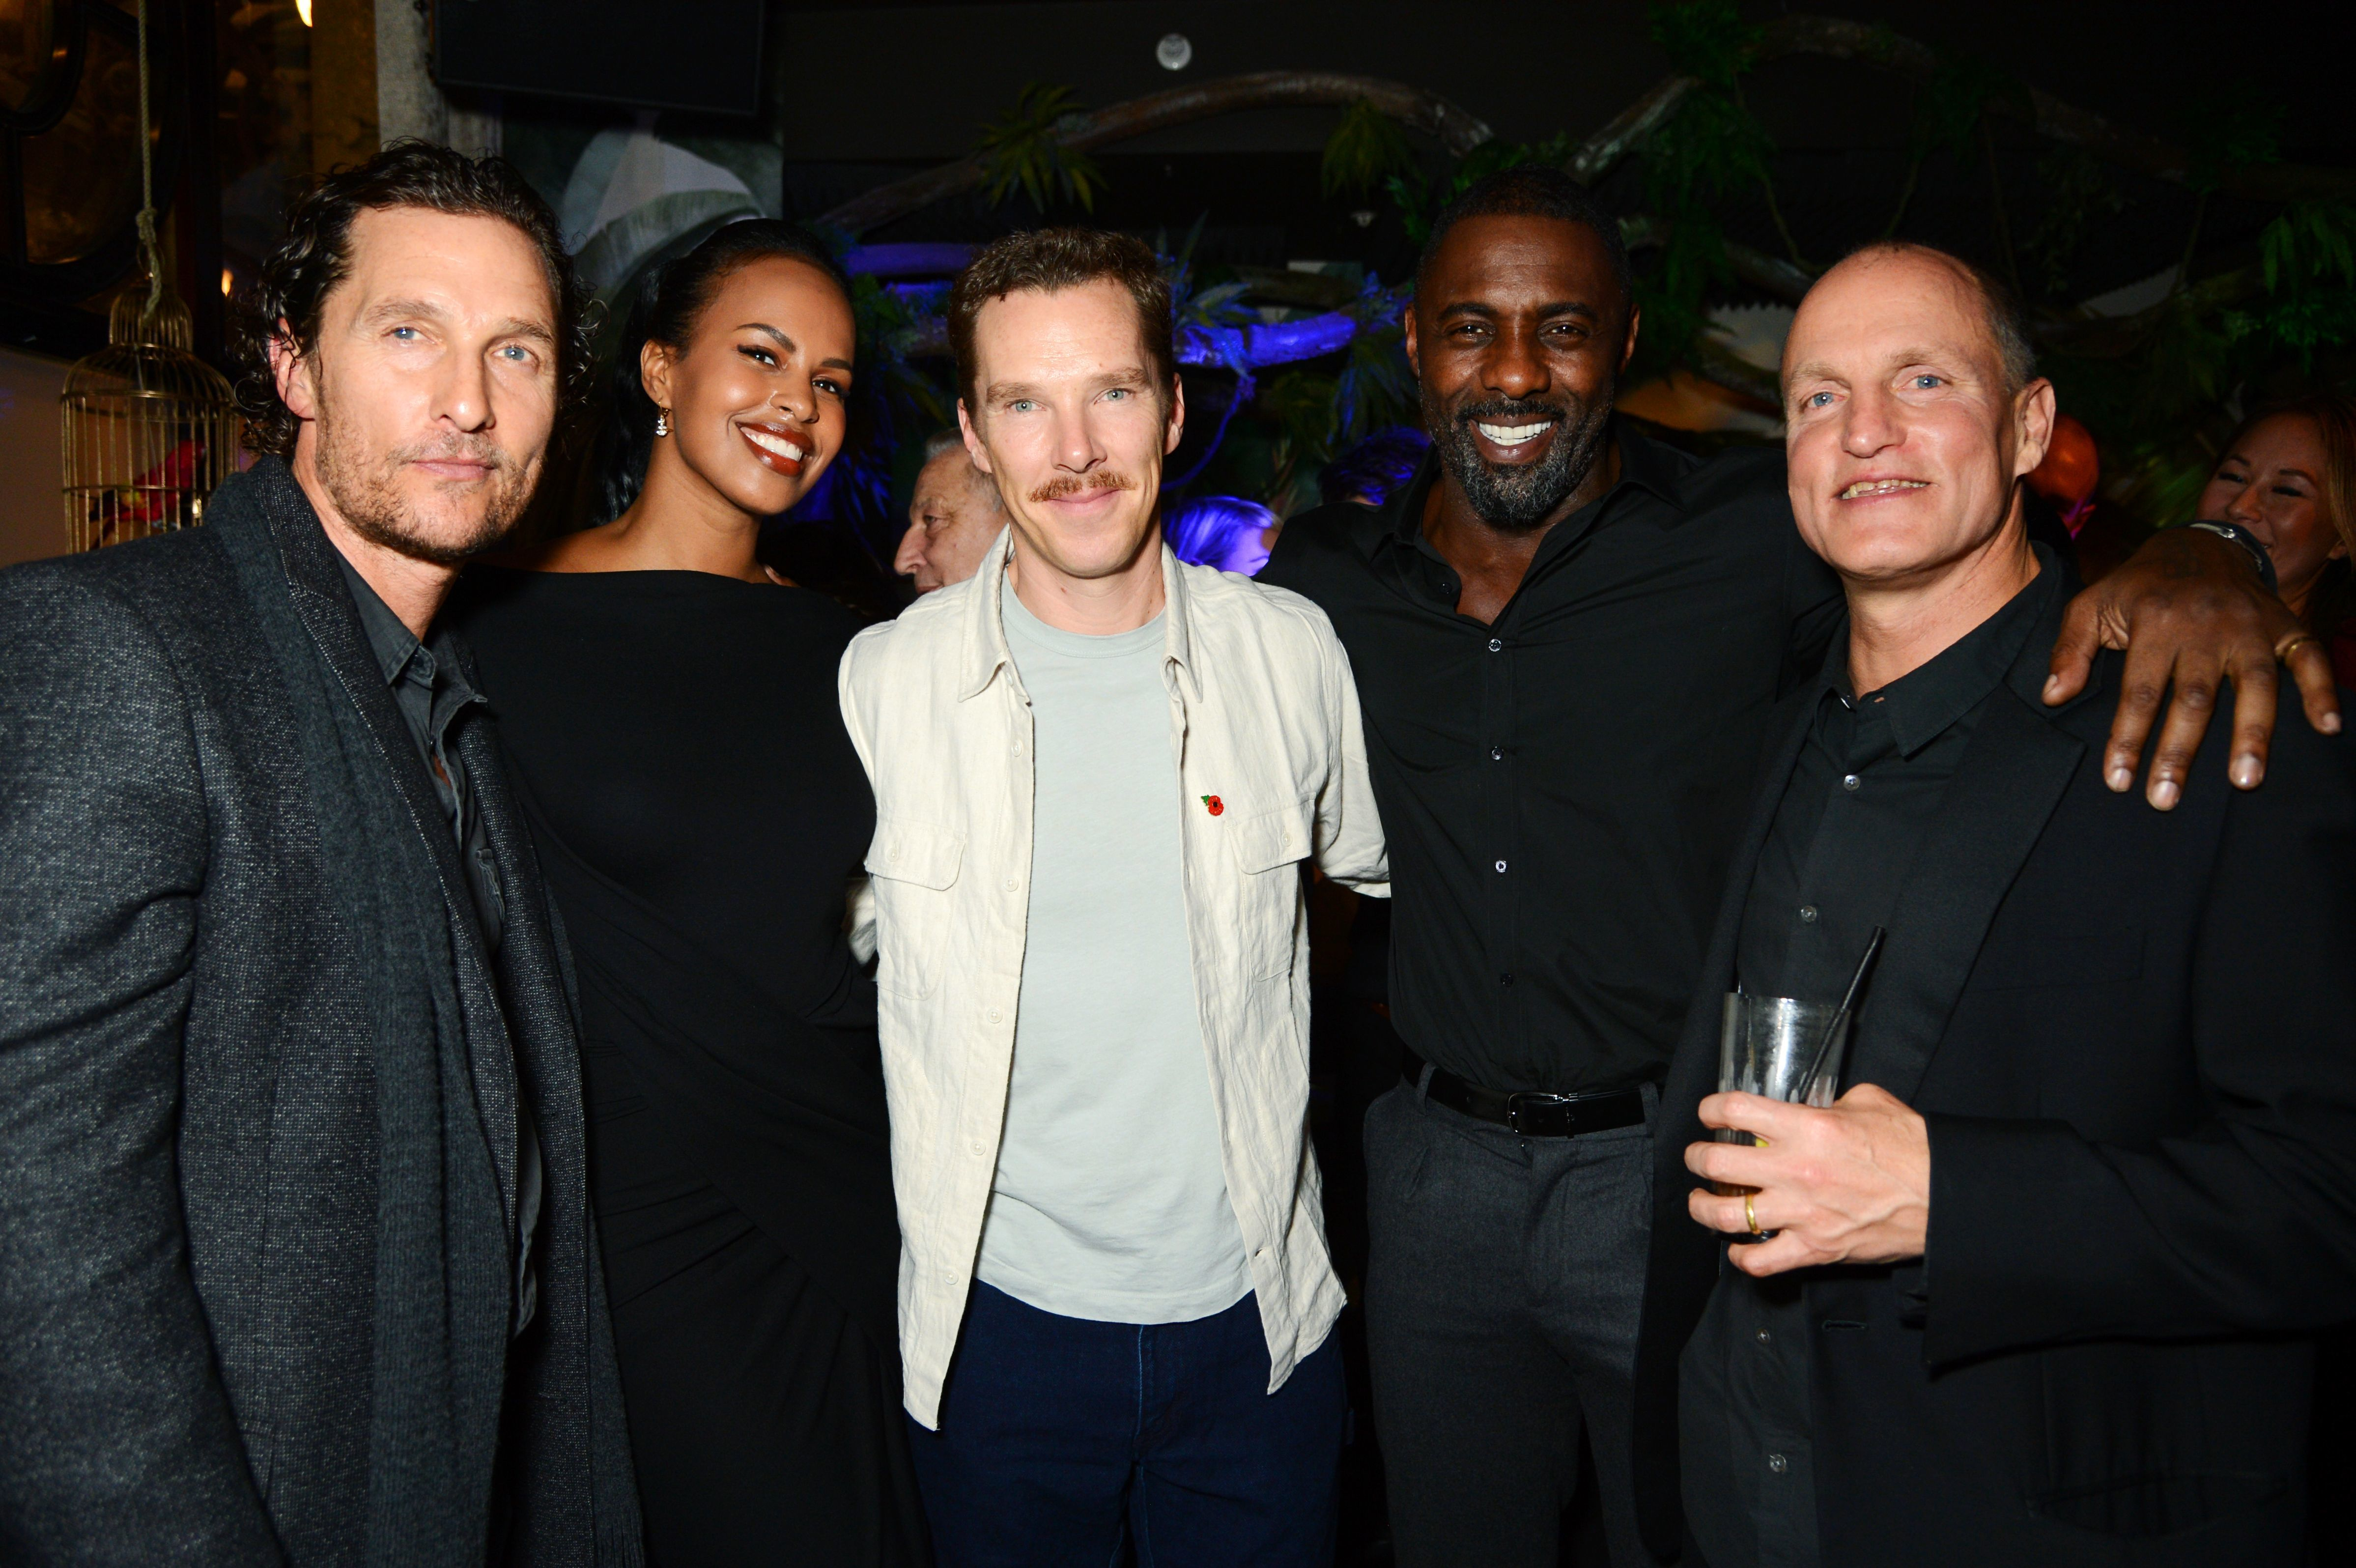 Matthew McConaughey, Sabrina Dhowre, Benedict Cumberbatch, Idris Elba and Woody Harrelson attend The Parrot opening in London on Nov. 8, 2018.